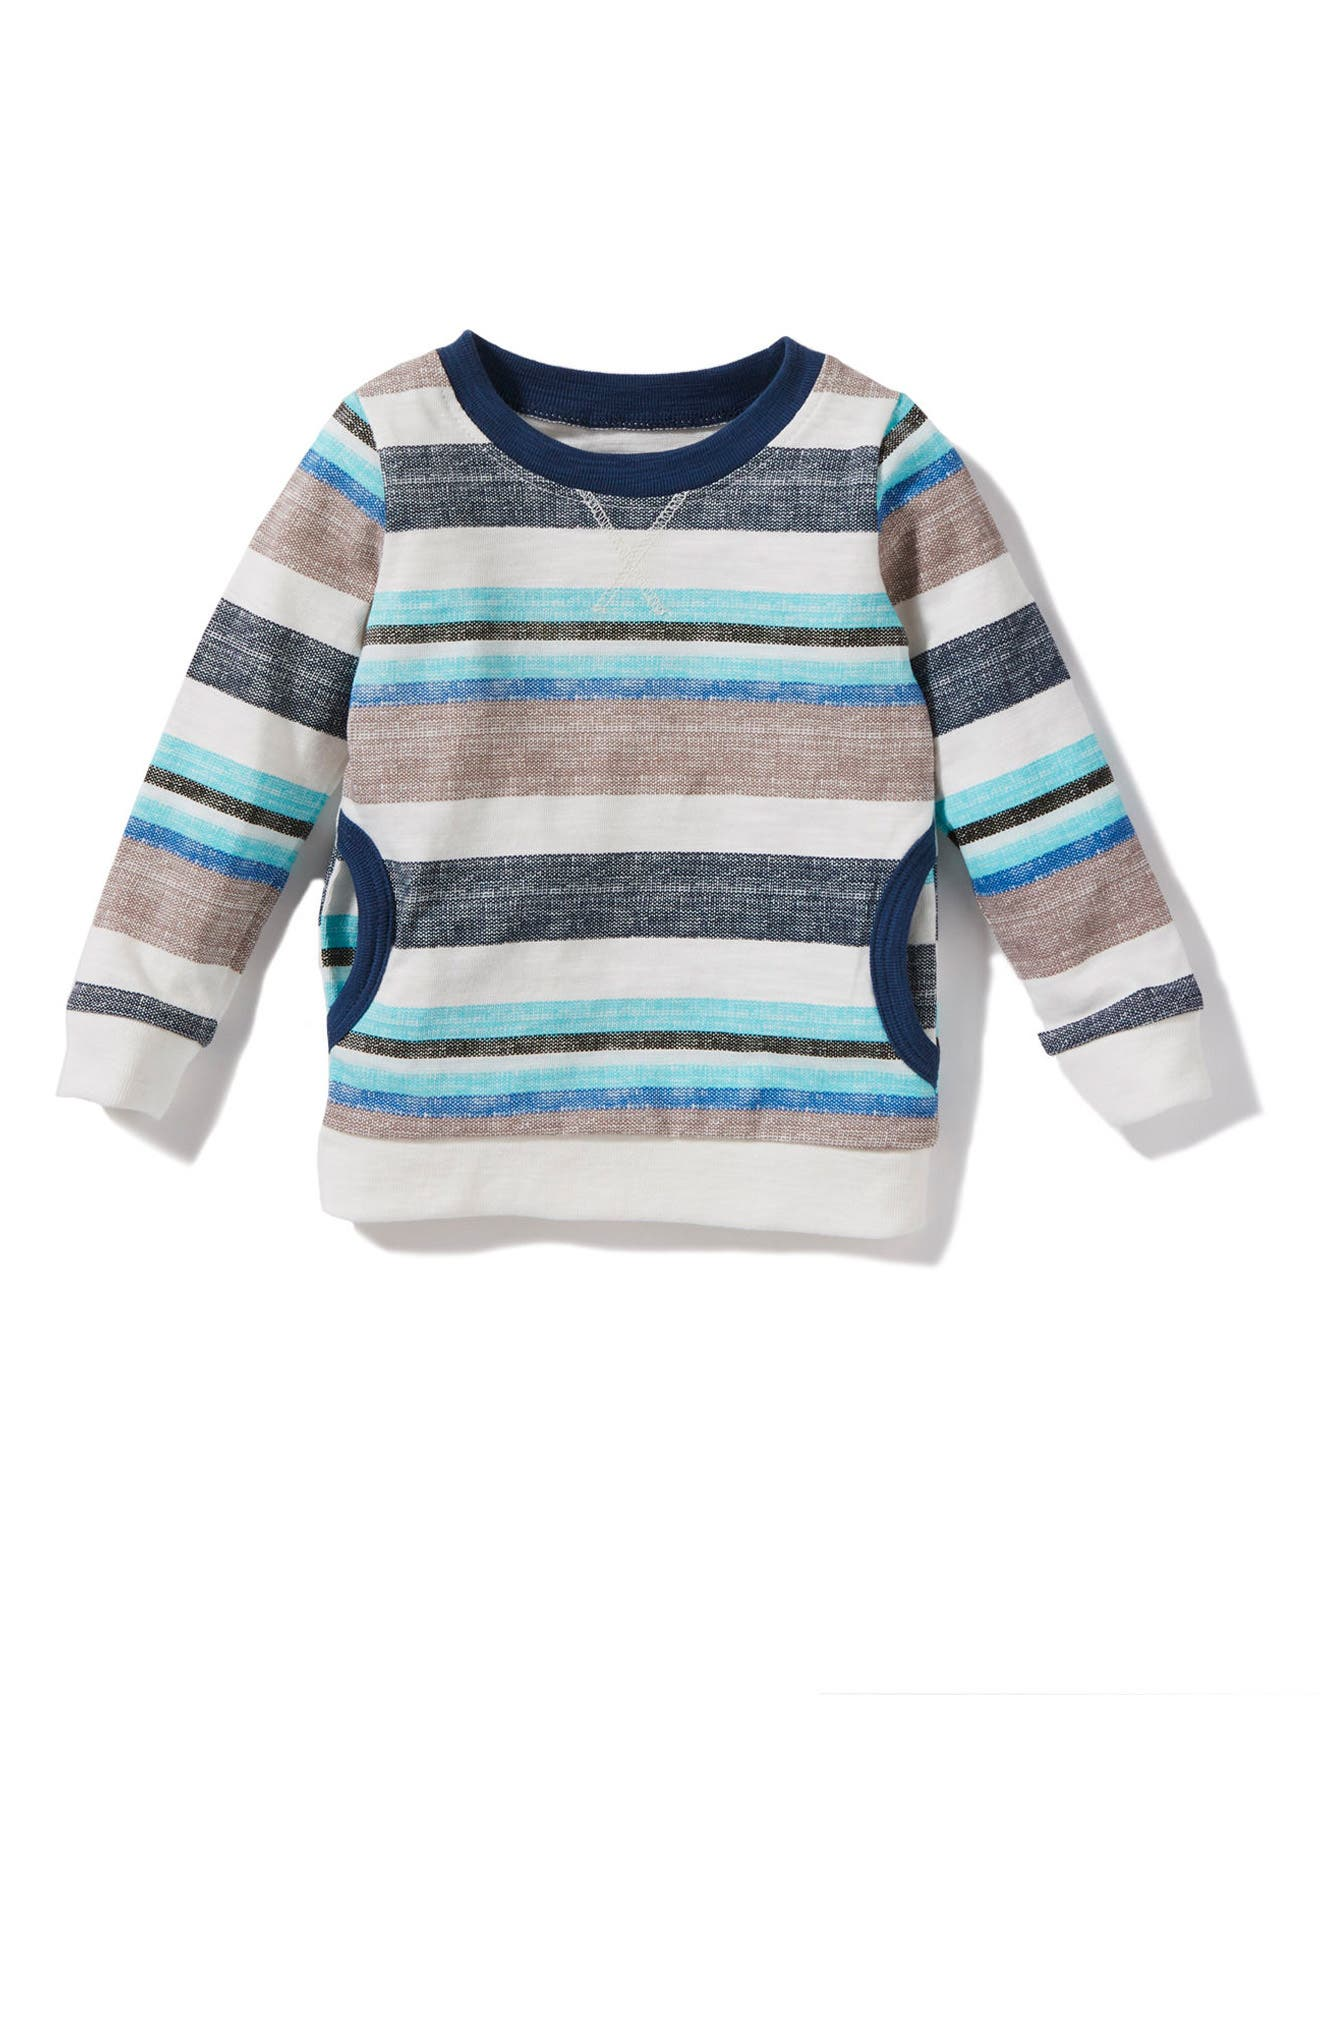 Main Image - Peek Declan Stripe Shirt (Baby Boys)